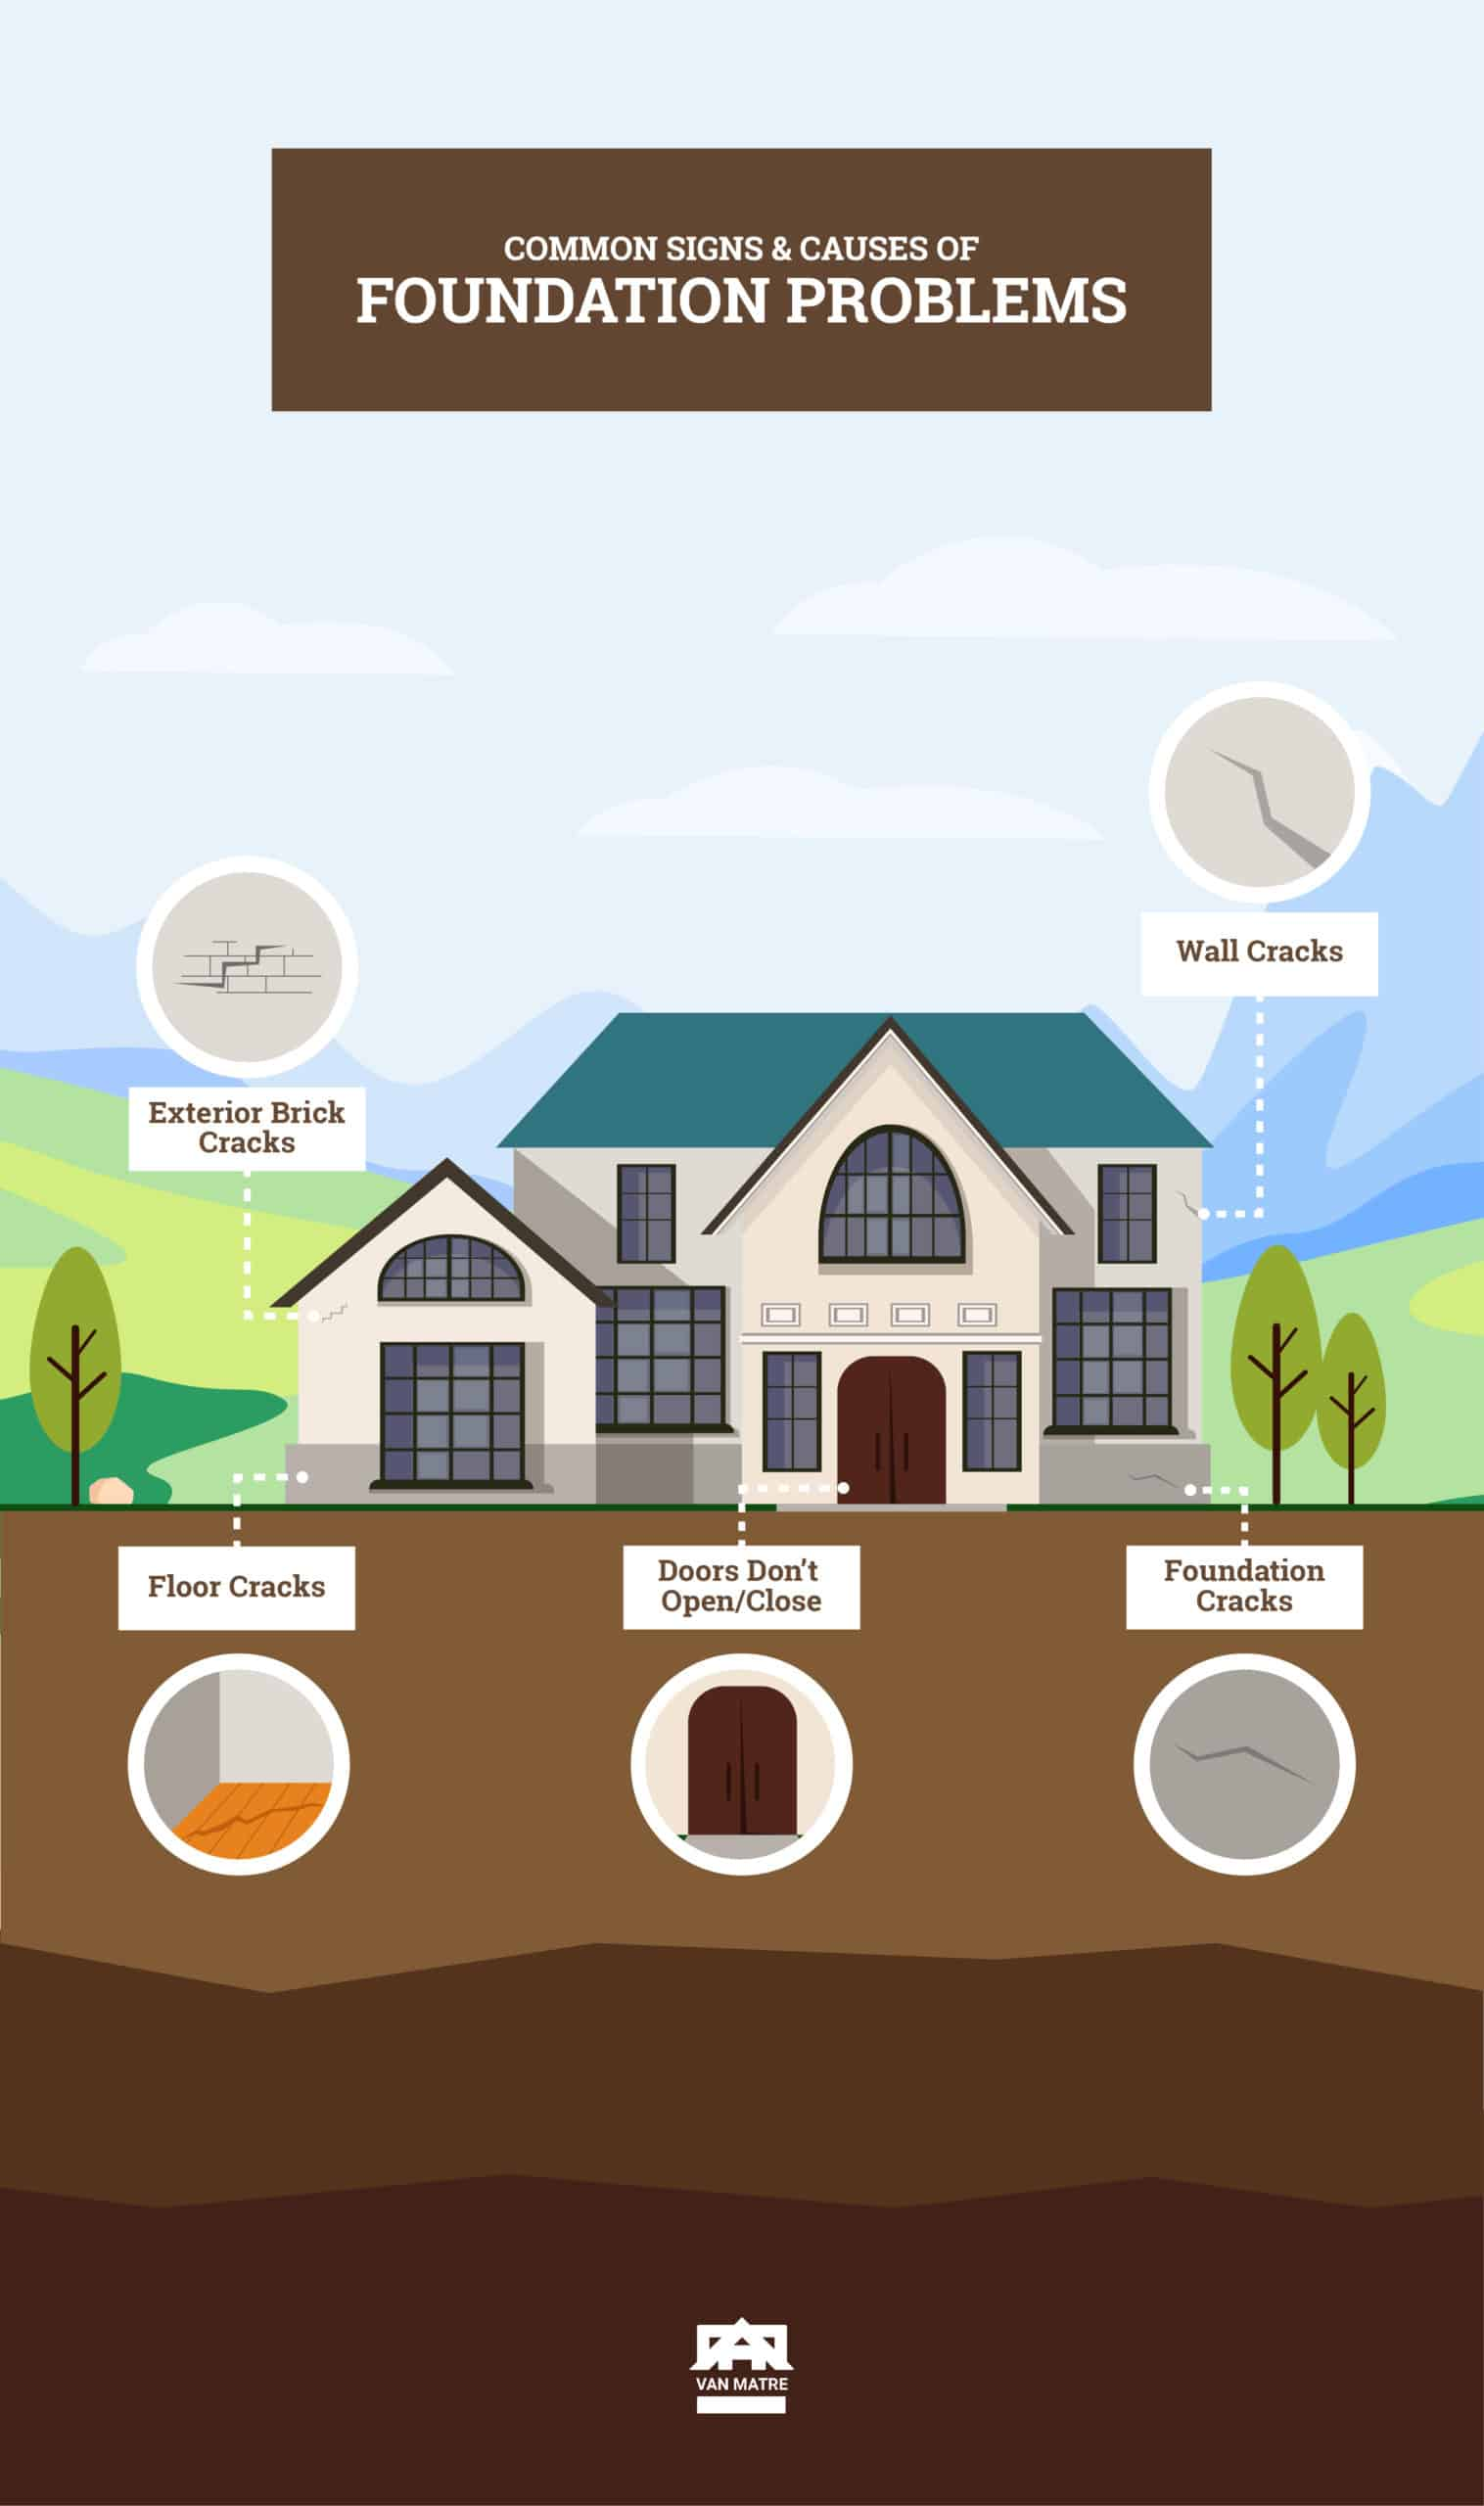 Van Matre Signs Of Foundation Repair Infographic